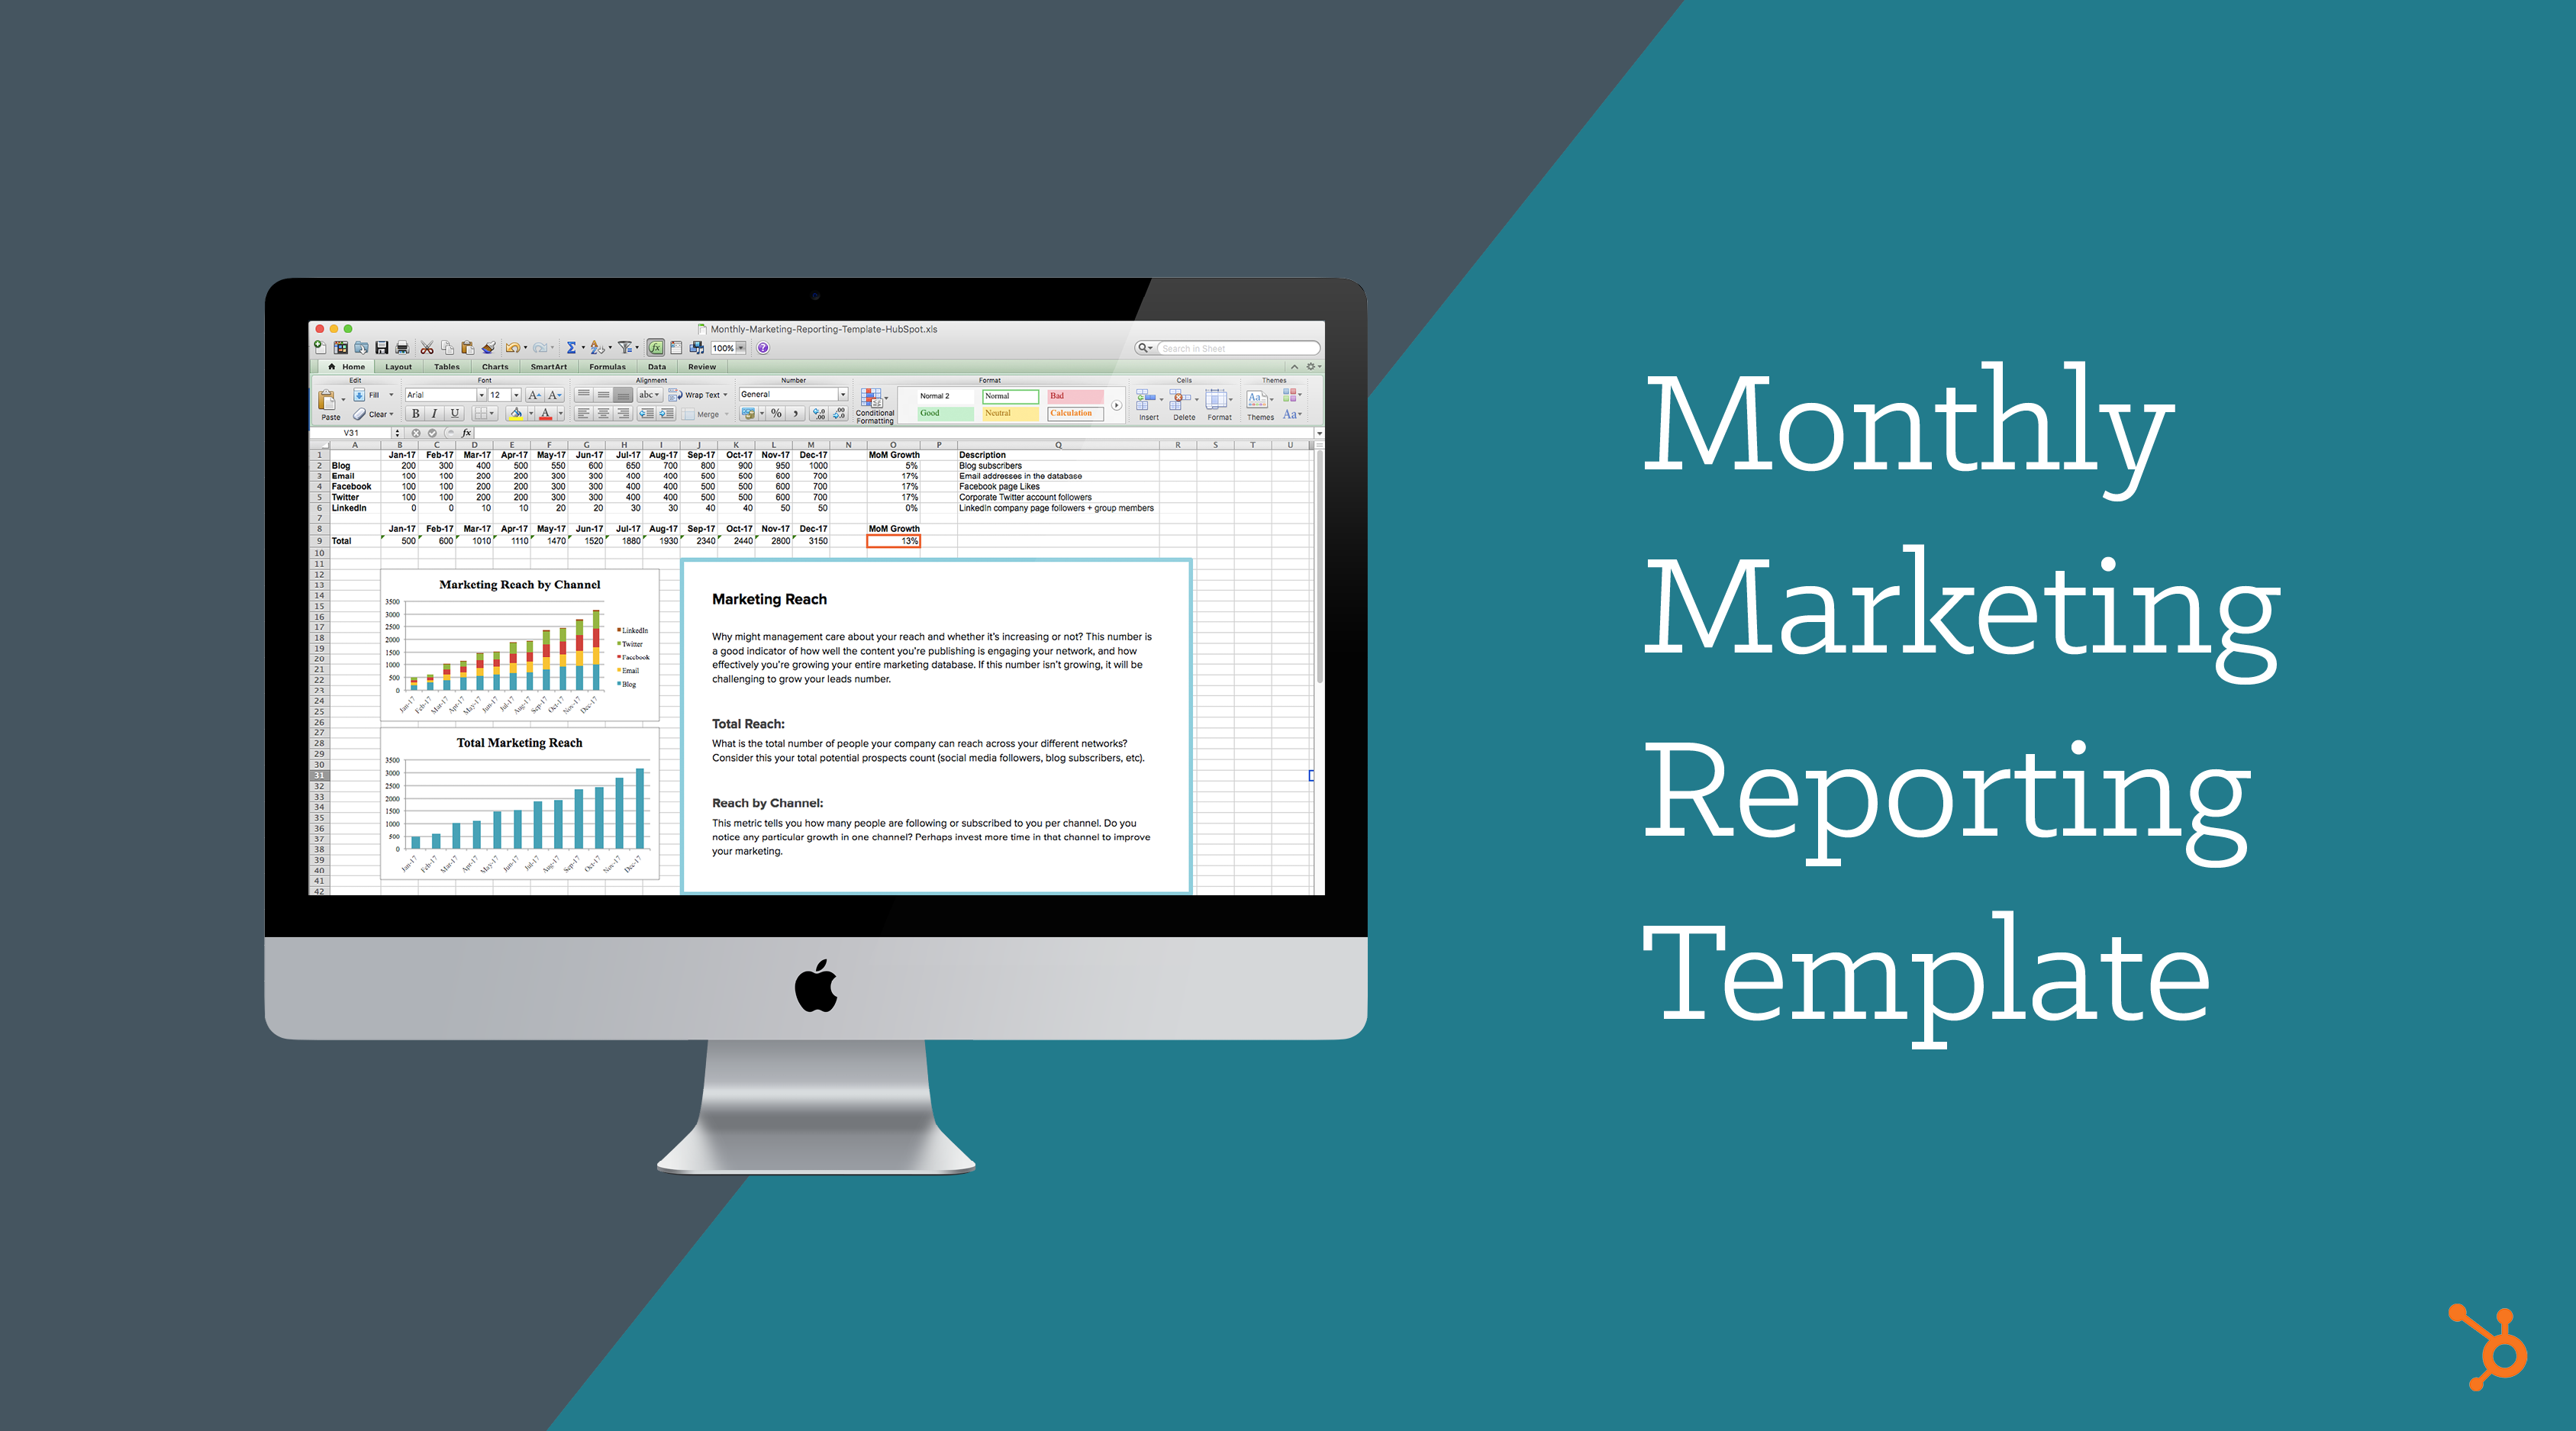 Monthly marketing reporting template free download toneelgroepblik Image collections